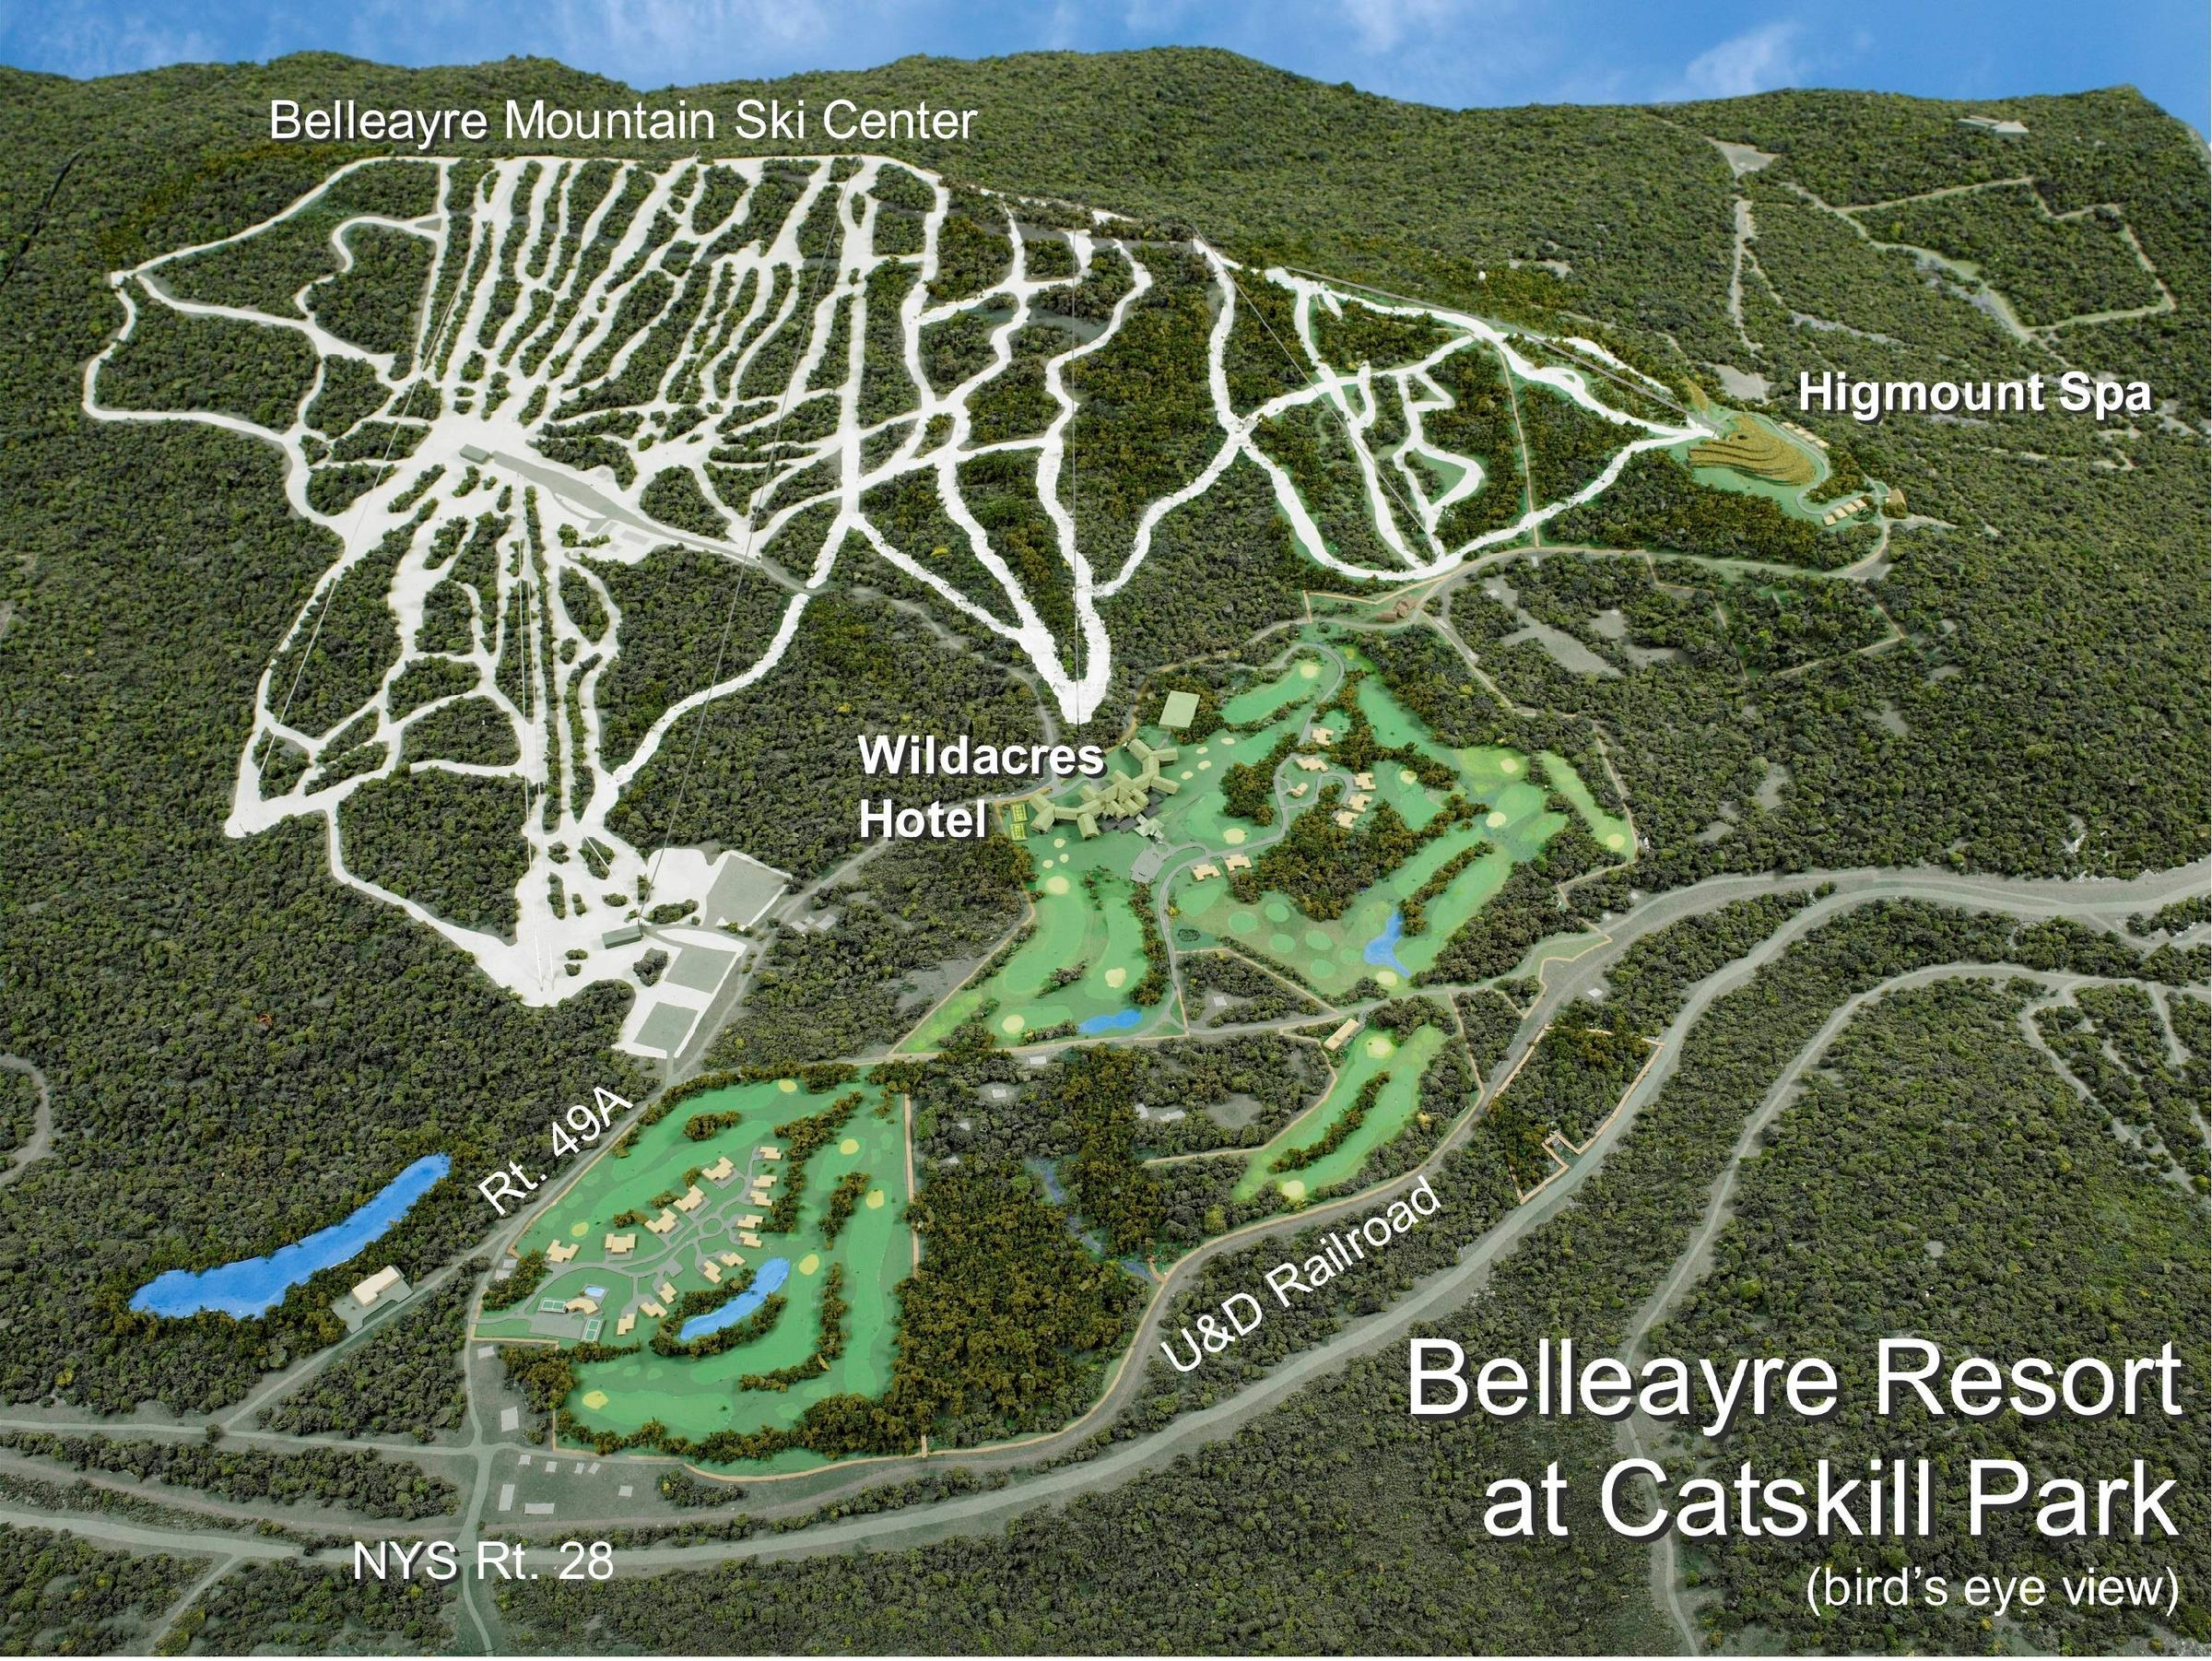 opponents lose legal challenge to proposed catskill resort | wamc